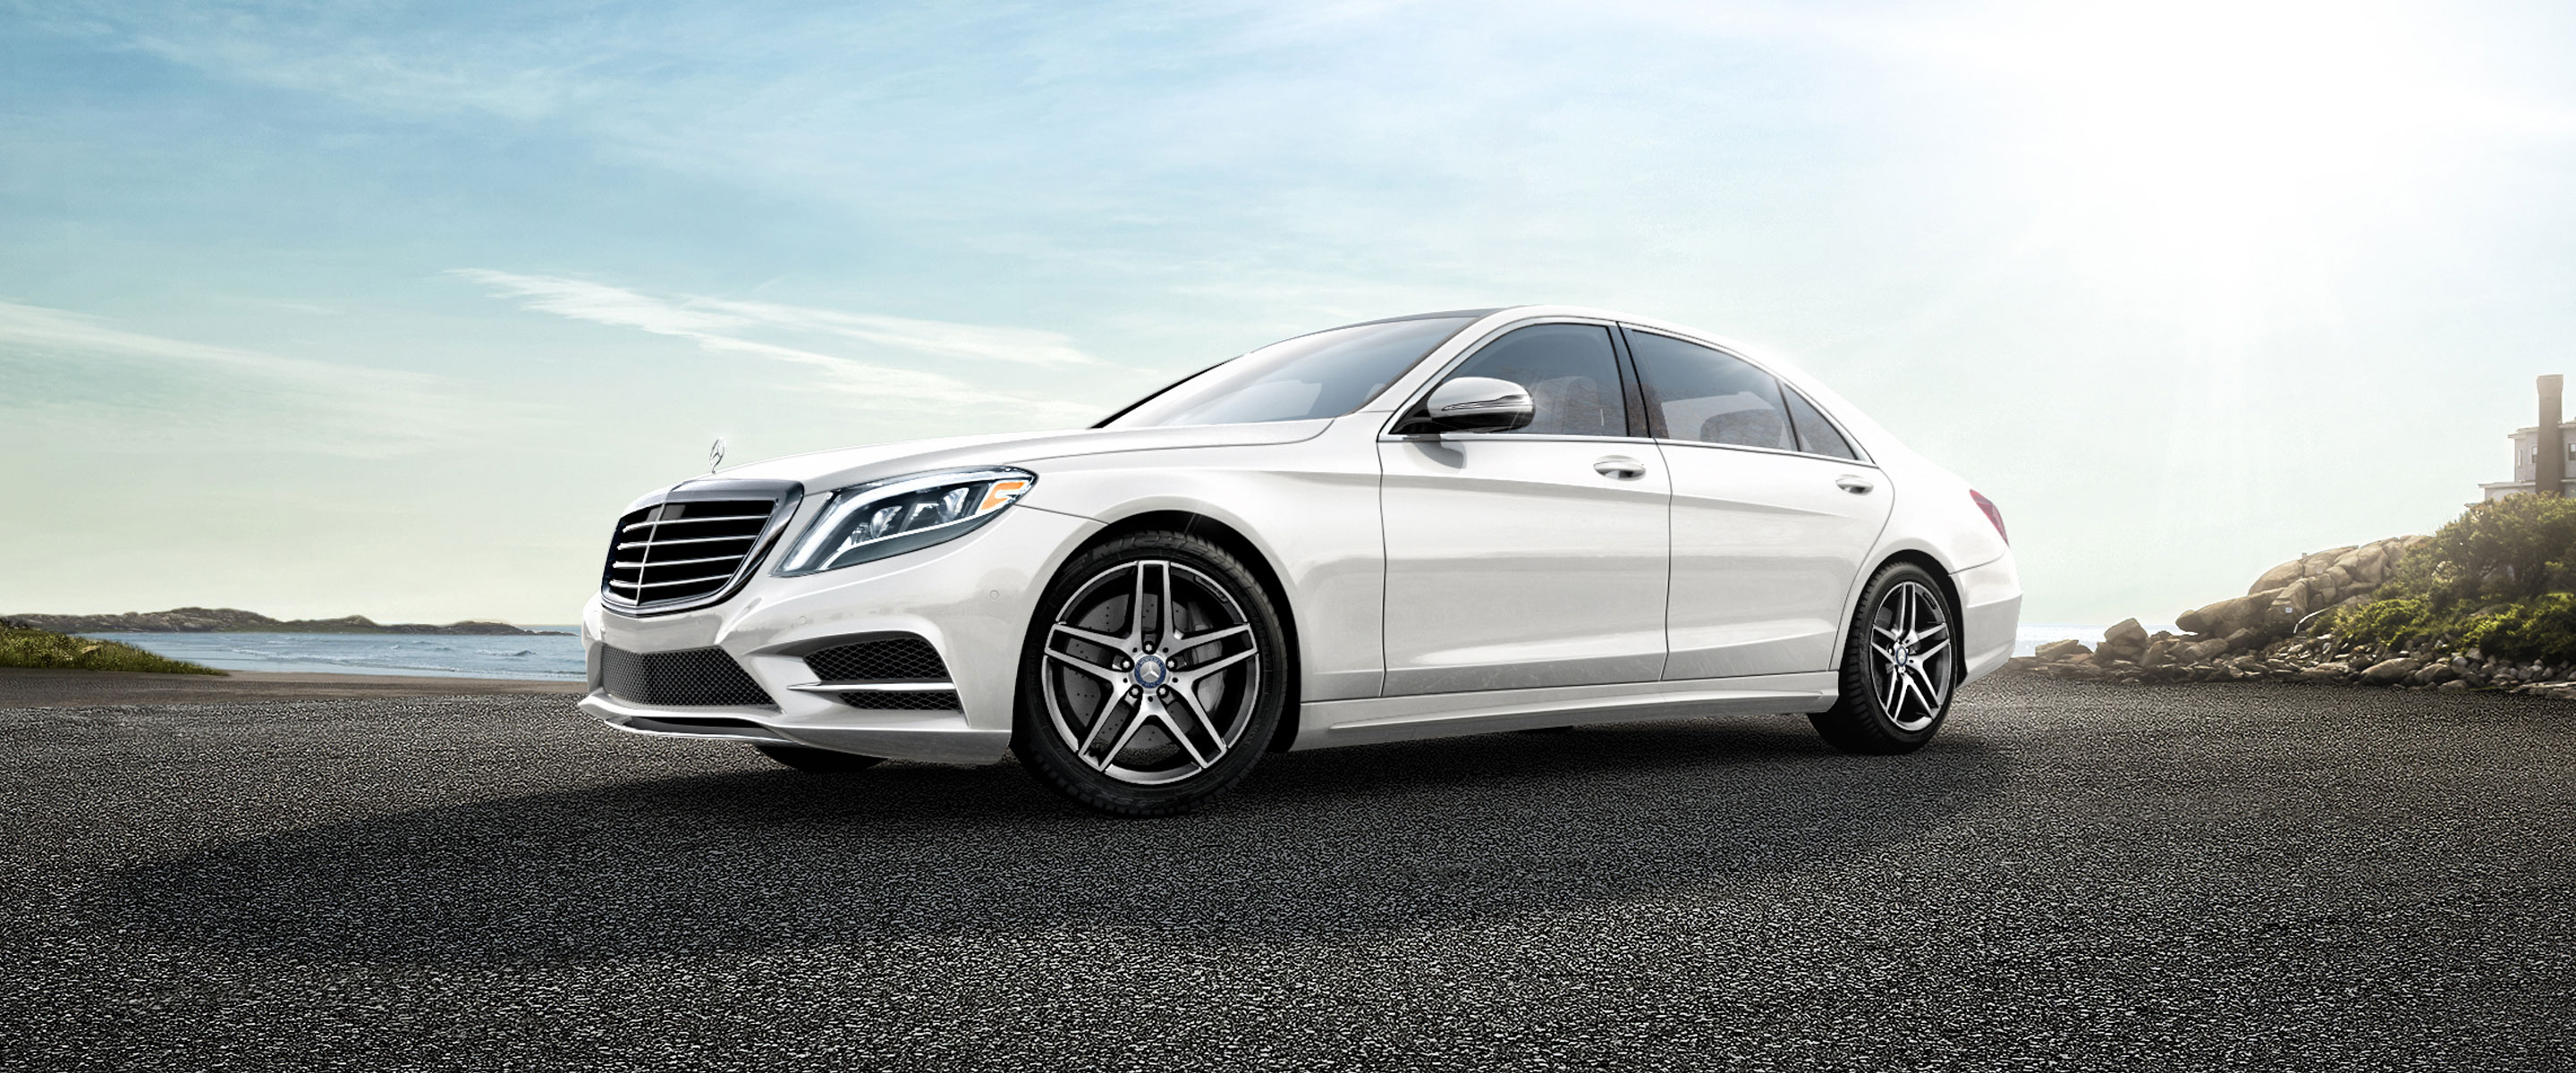 new main price specials city benz dr exterior mercedes finance and mb lease oklahoma htm coupe image ok e class